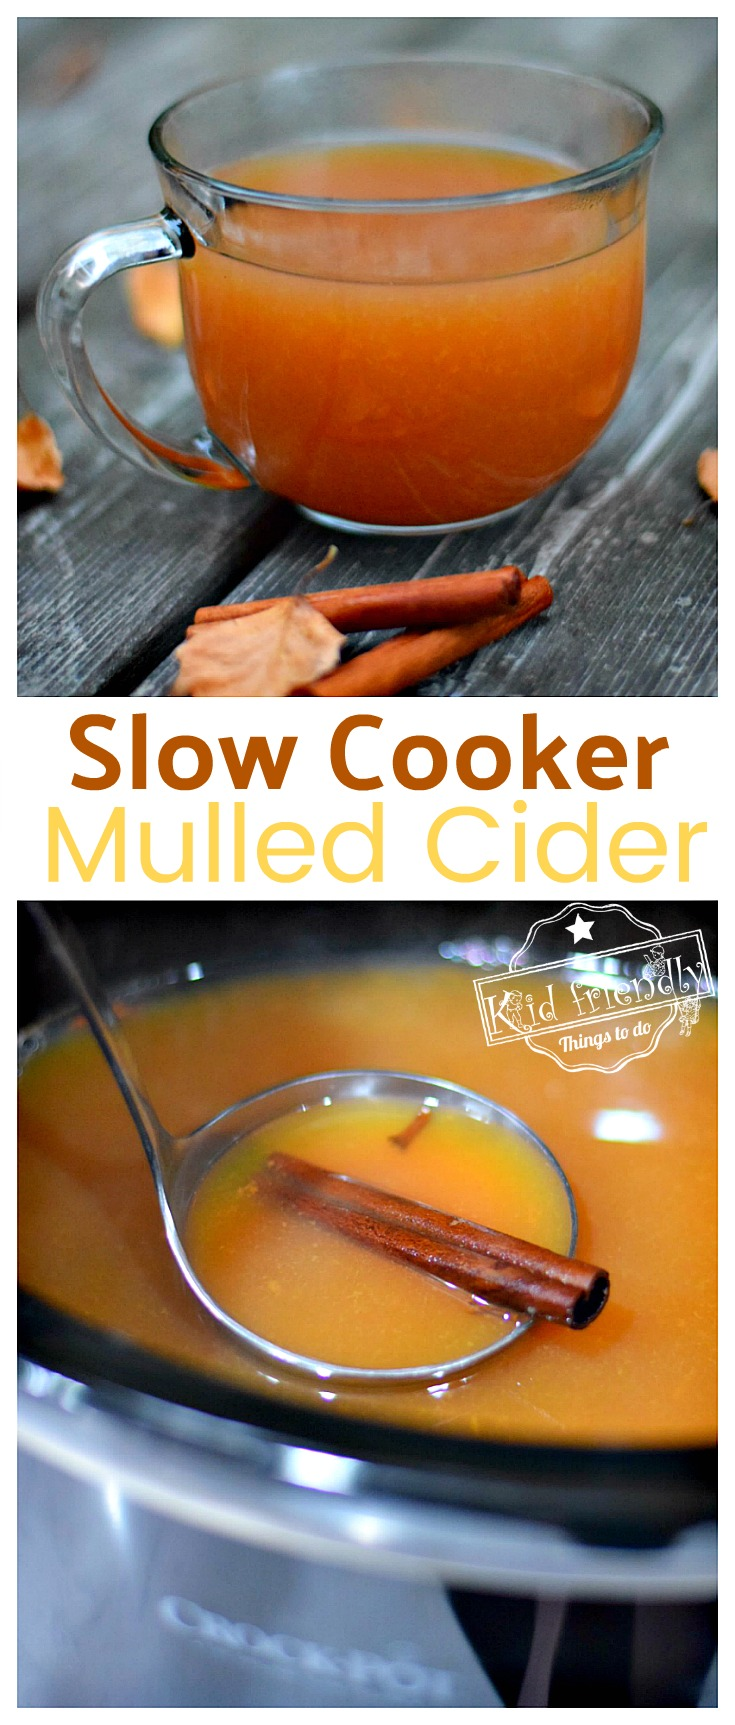 Delicious Slow Cooker Mulled Cider Recipe - perfect crock pot recipe for fall and winter nights - www.kidfriendlythingstodo.com